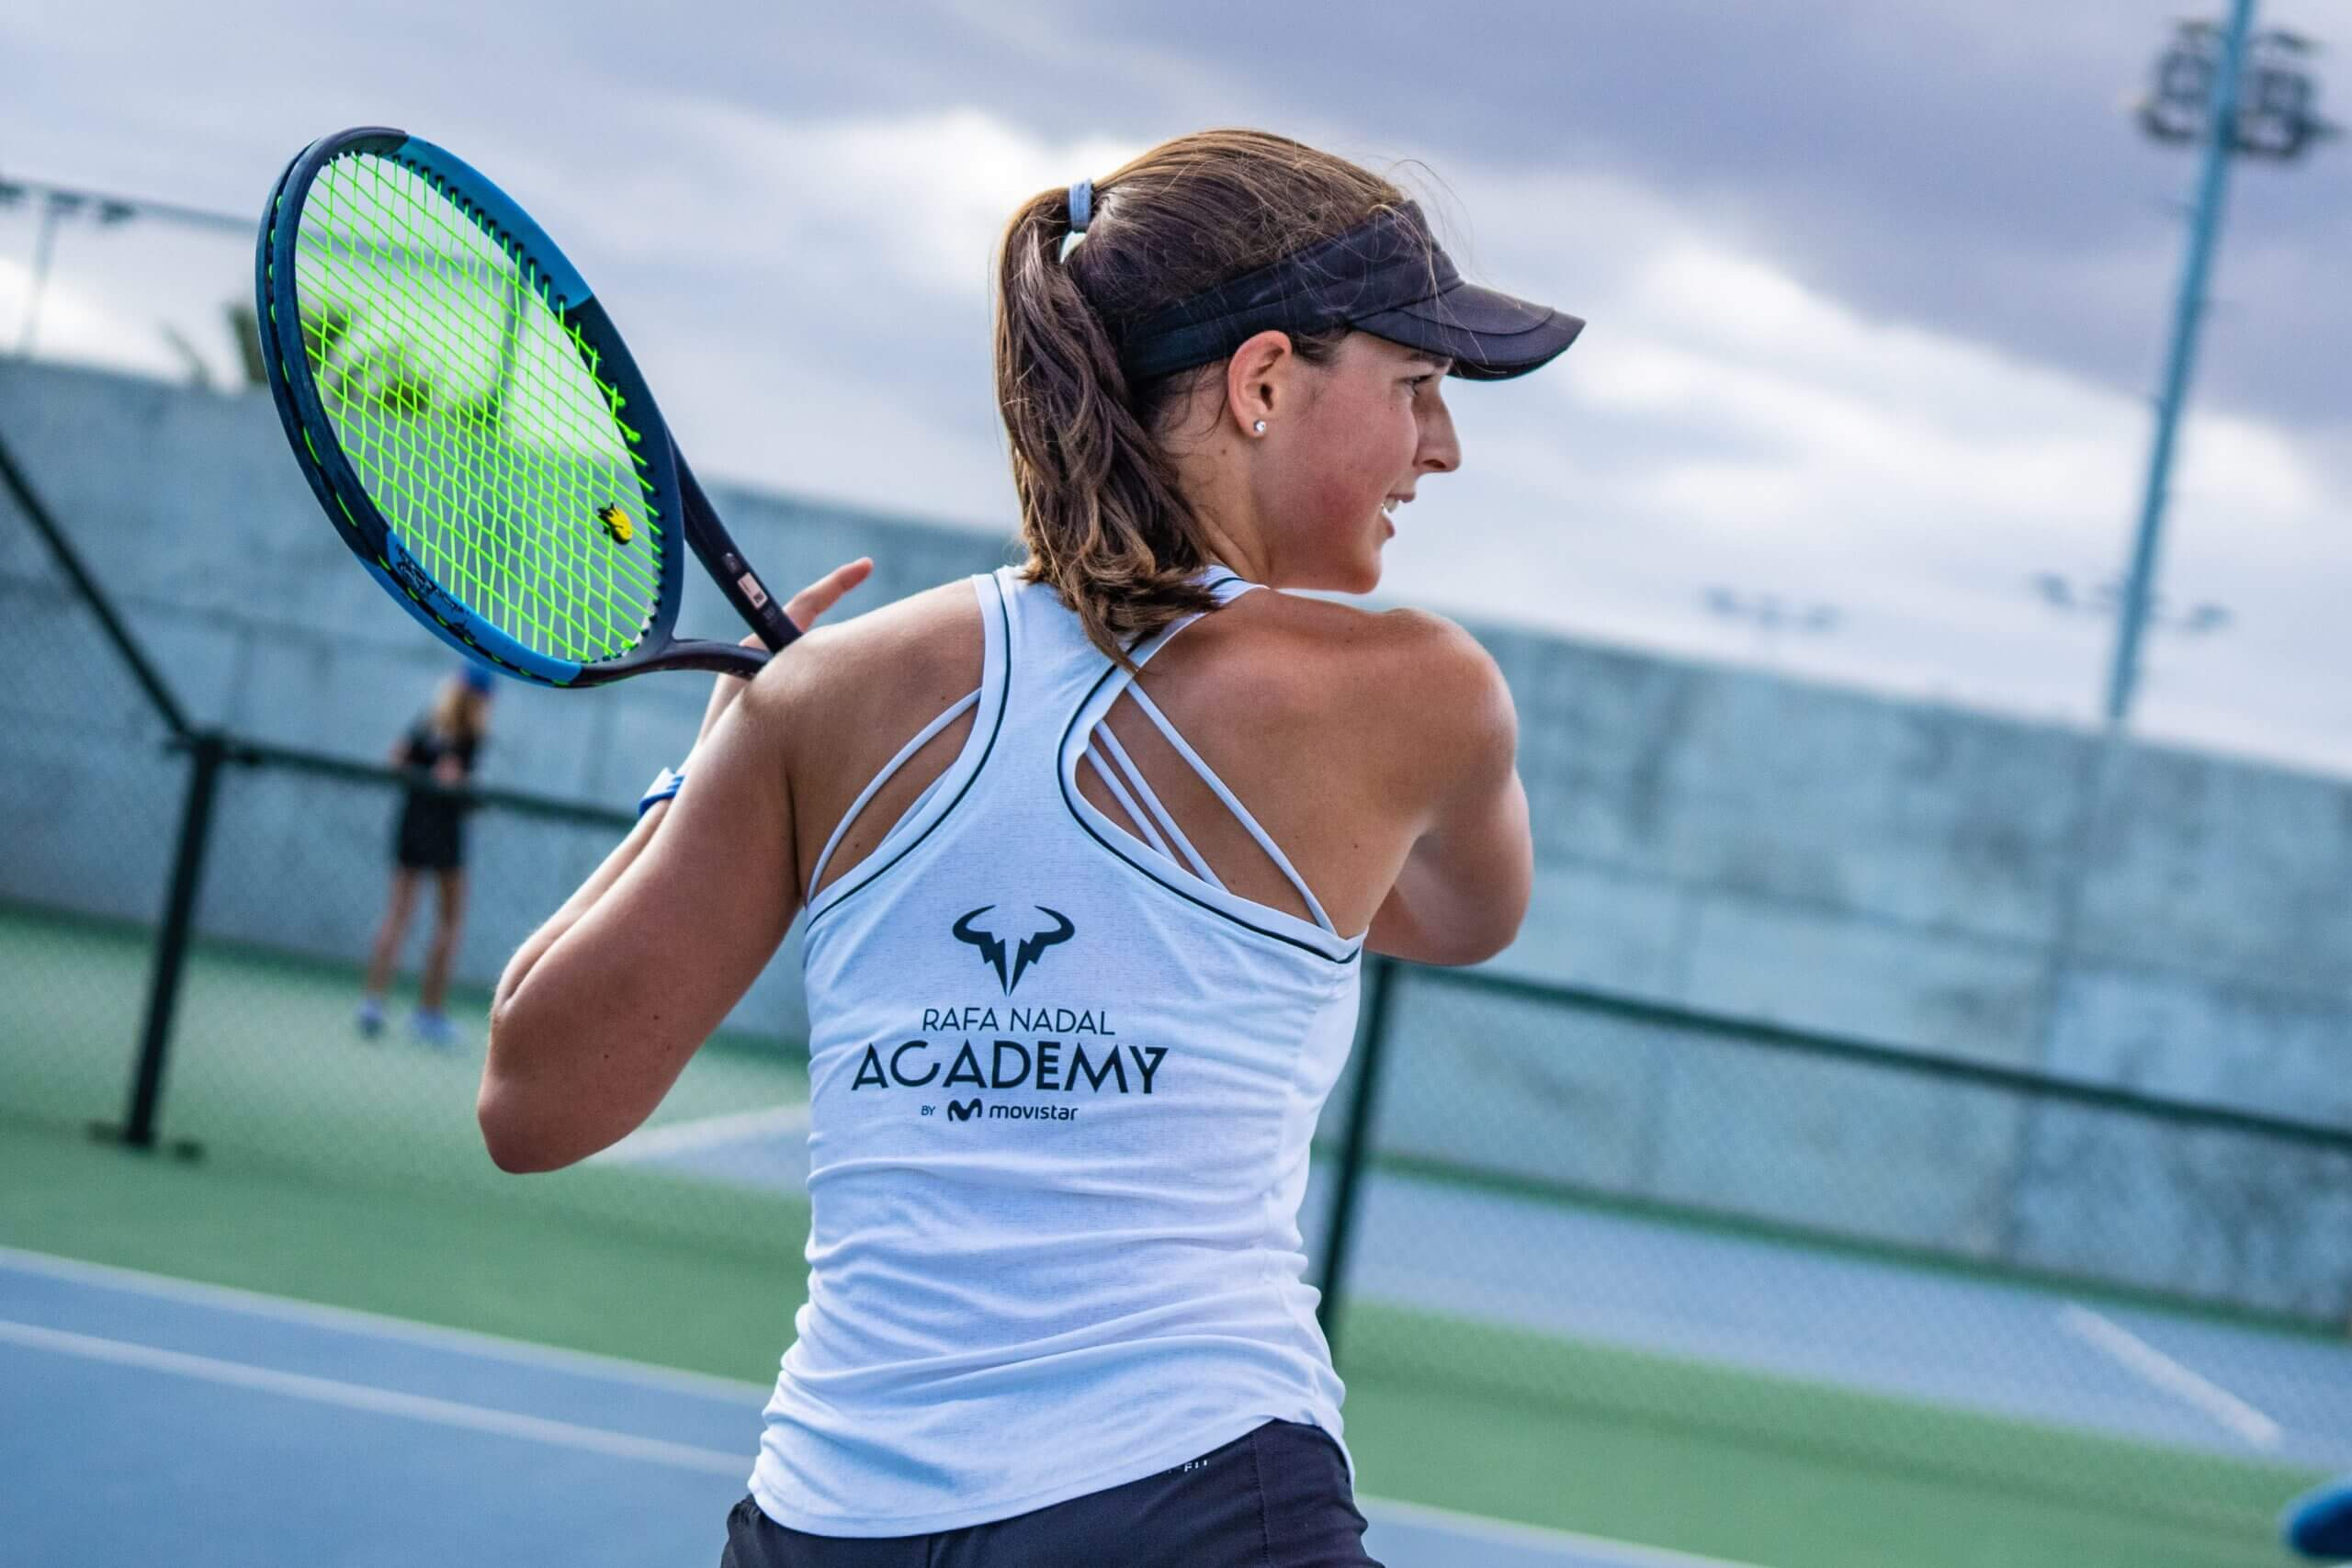 Rafa Nadal Academy USA - Sign up for our newsletter